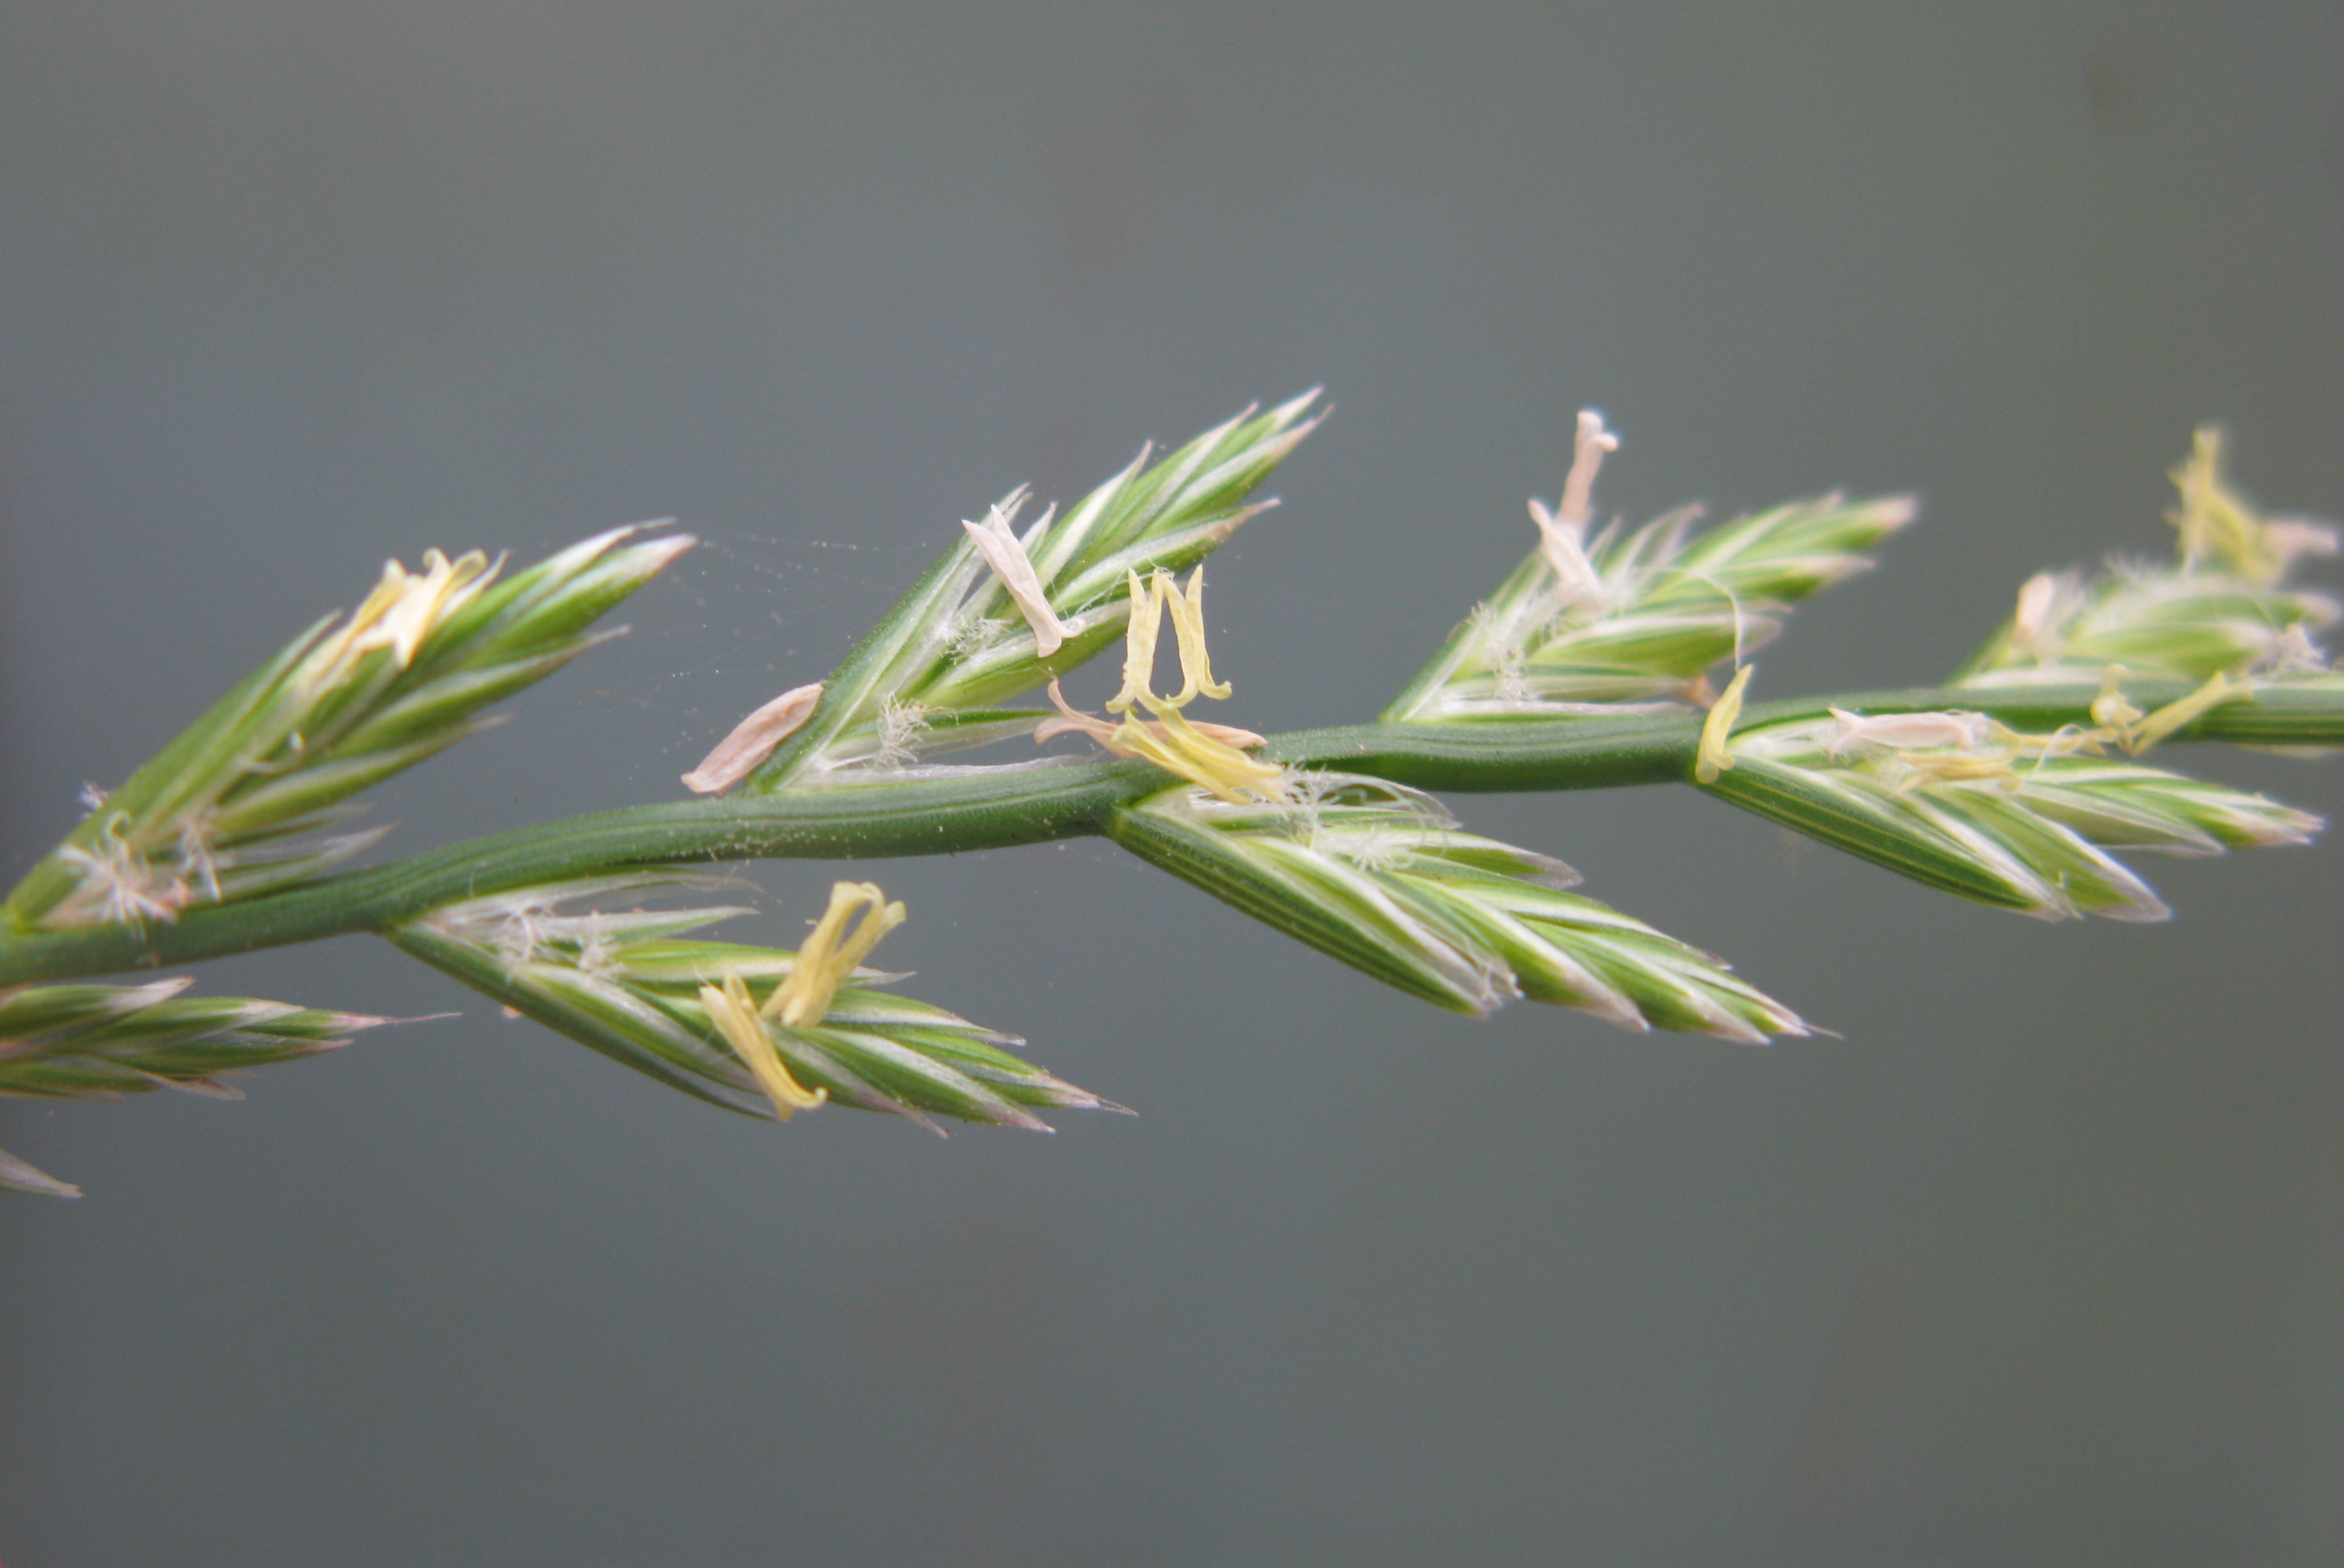 By Harry Rose from South West Rocks, Australia (Lolium perenne spikelets2 anthesis) [CC BY 2.0 (http://creativecommons.org/licenses/by/2.0)], via Wikimedia Commons